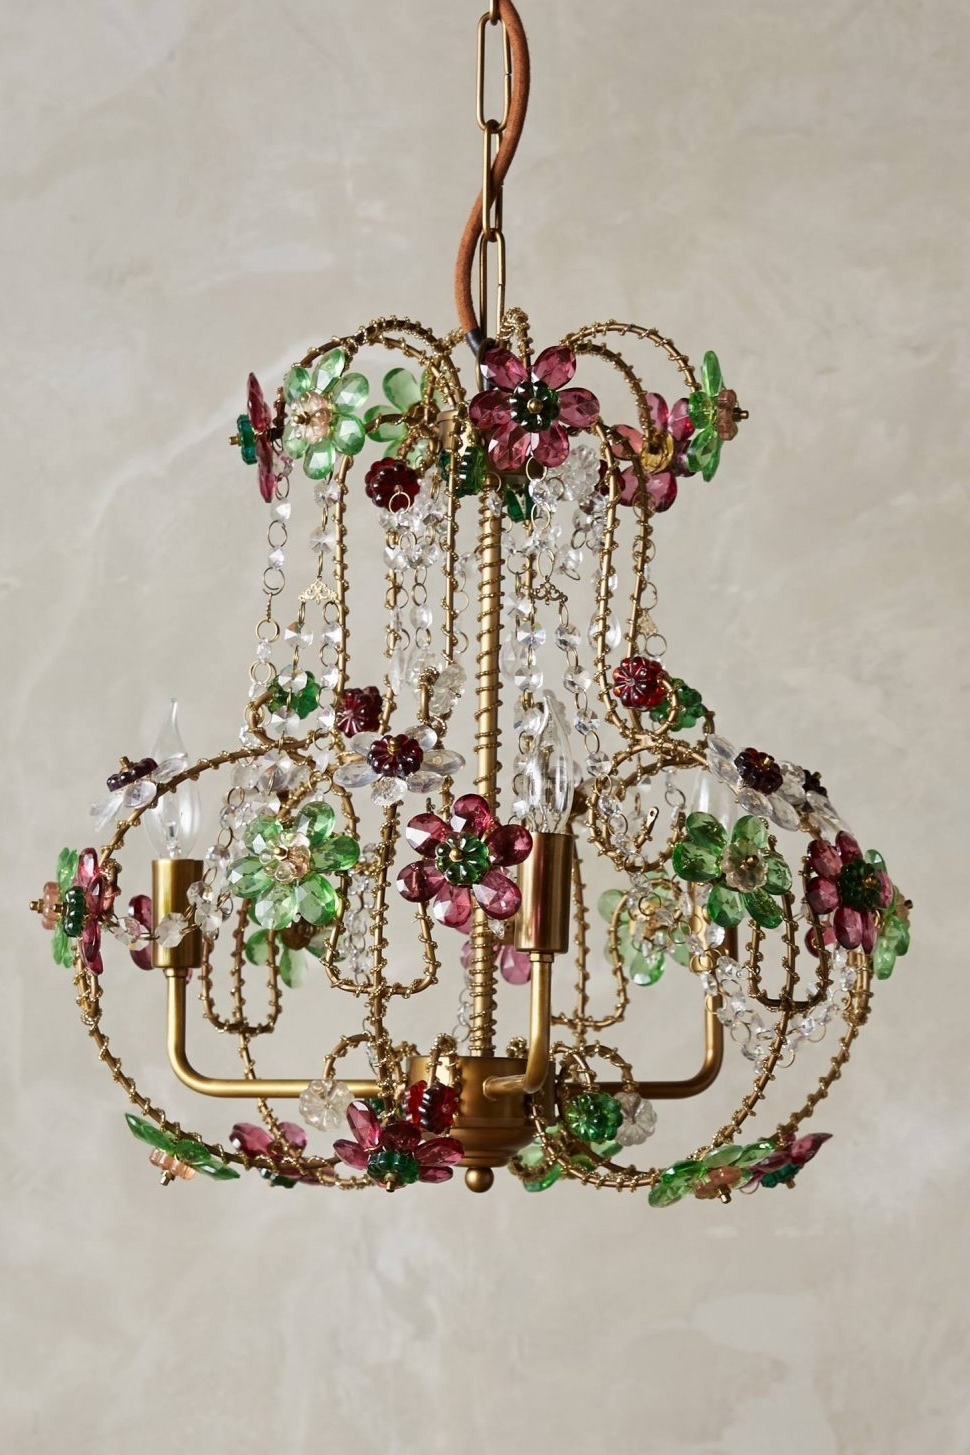 Coloured Glass Chandelier Within Most Current Chandeliers Design : Wonderful Colorful Chandeliers Laurel Loves Via (View 8 of 20)